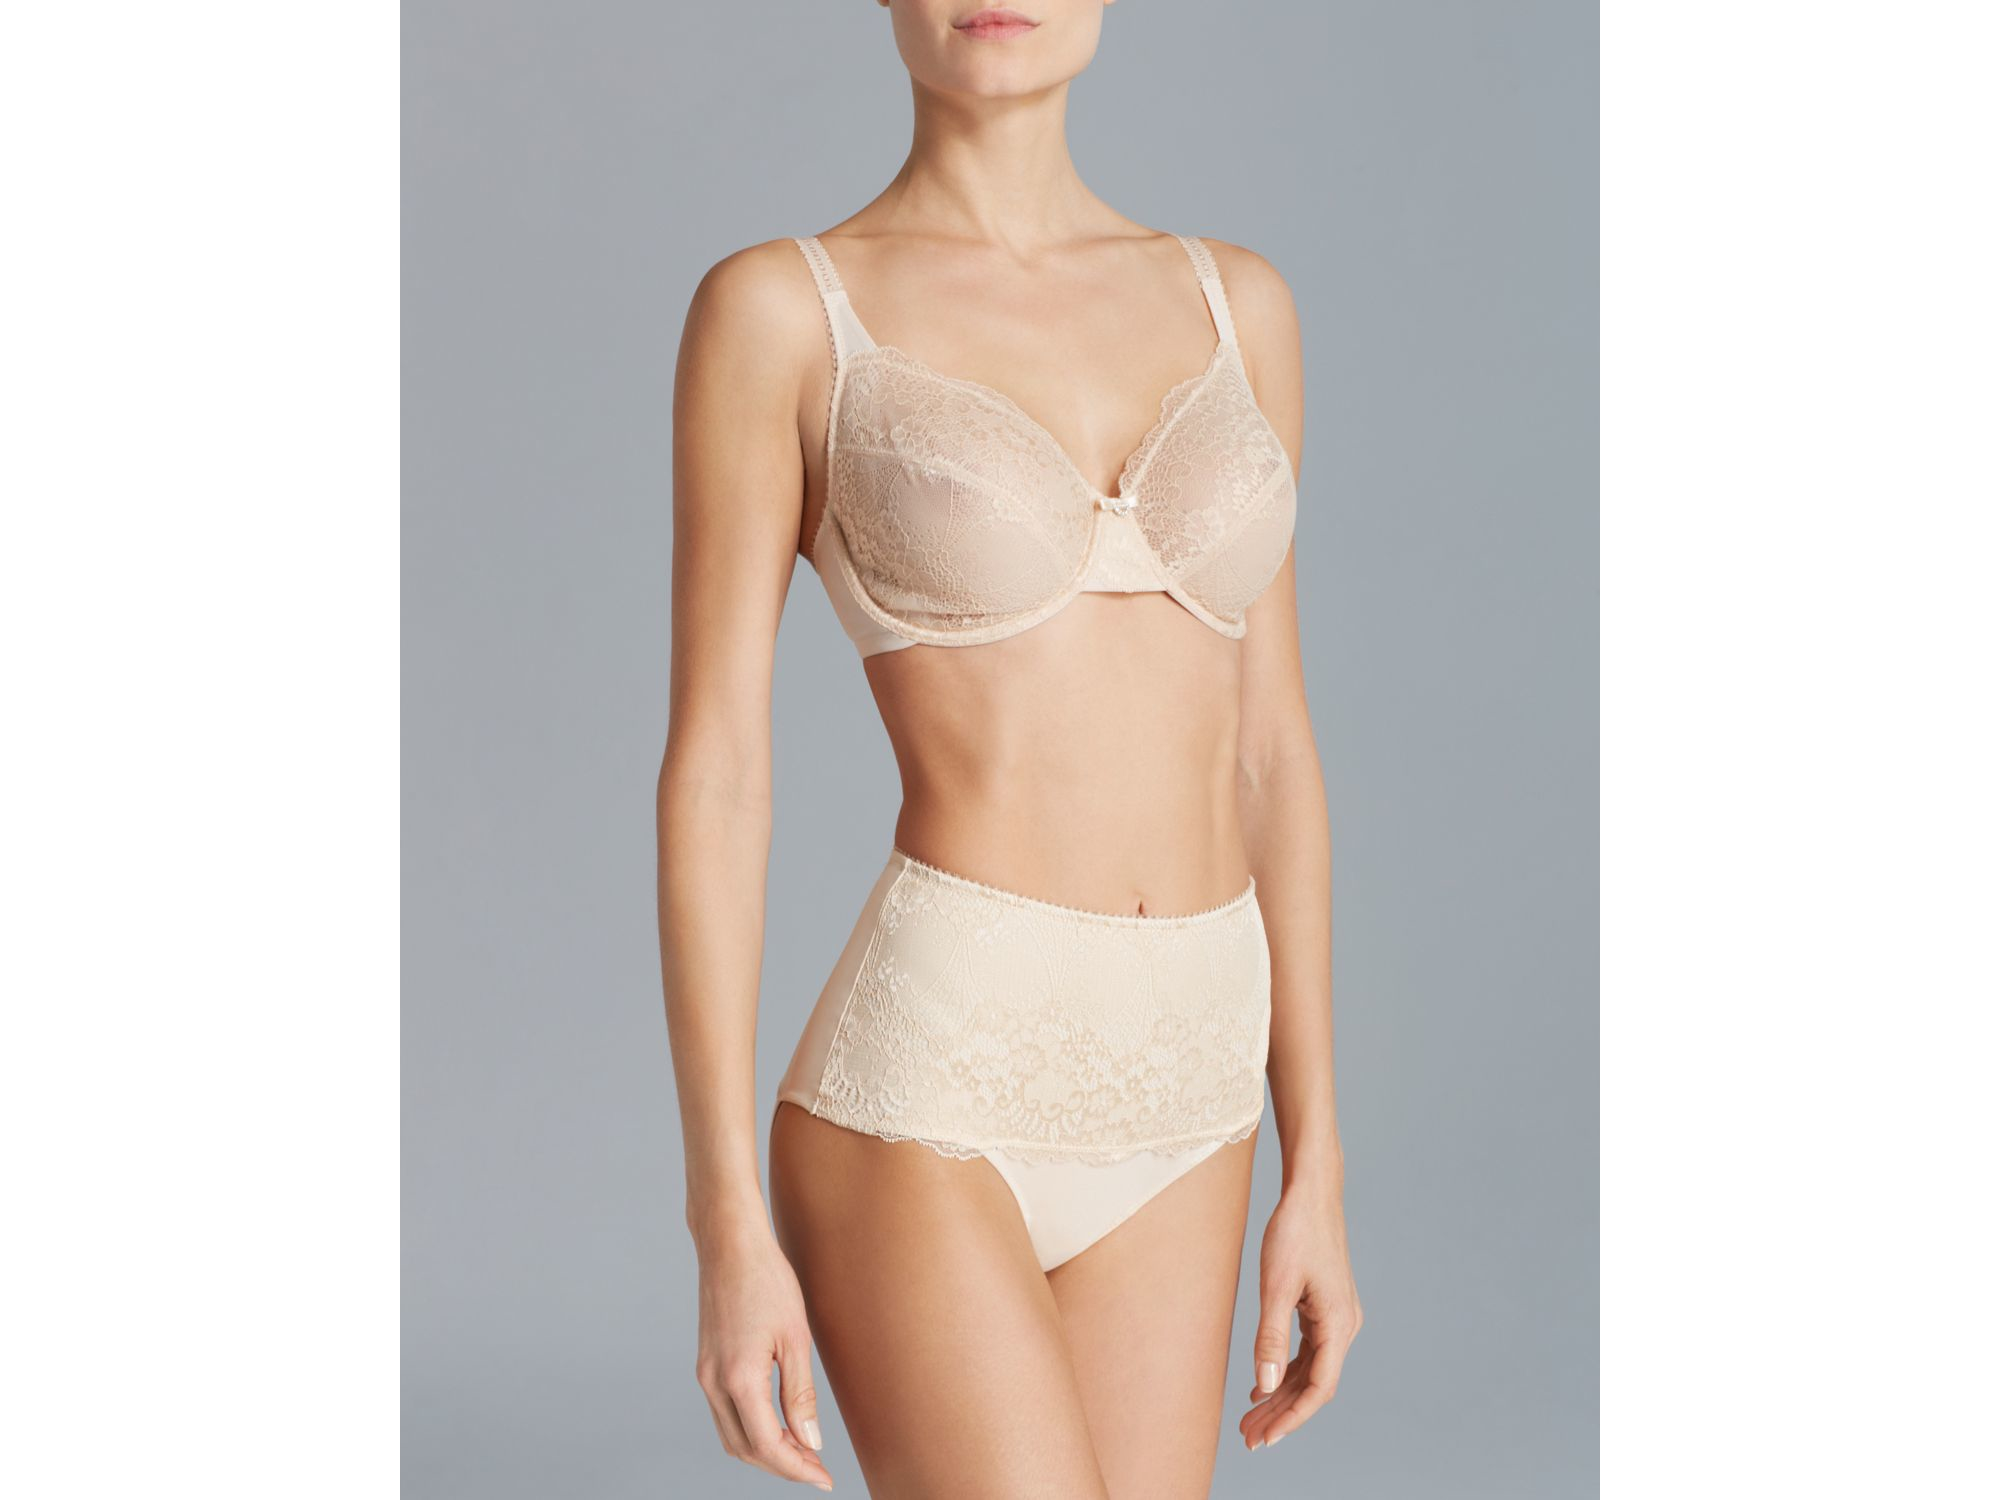 a0ff8c37e0 Le Mystere Bra - Defining Lace Unlined Underwire  1959 in Natural - Lyst